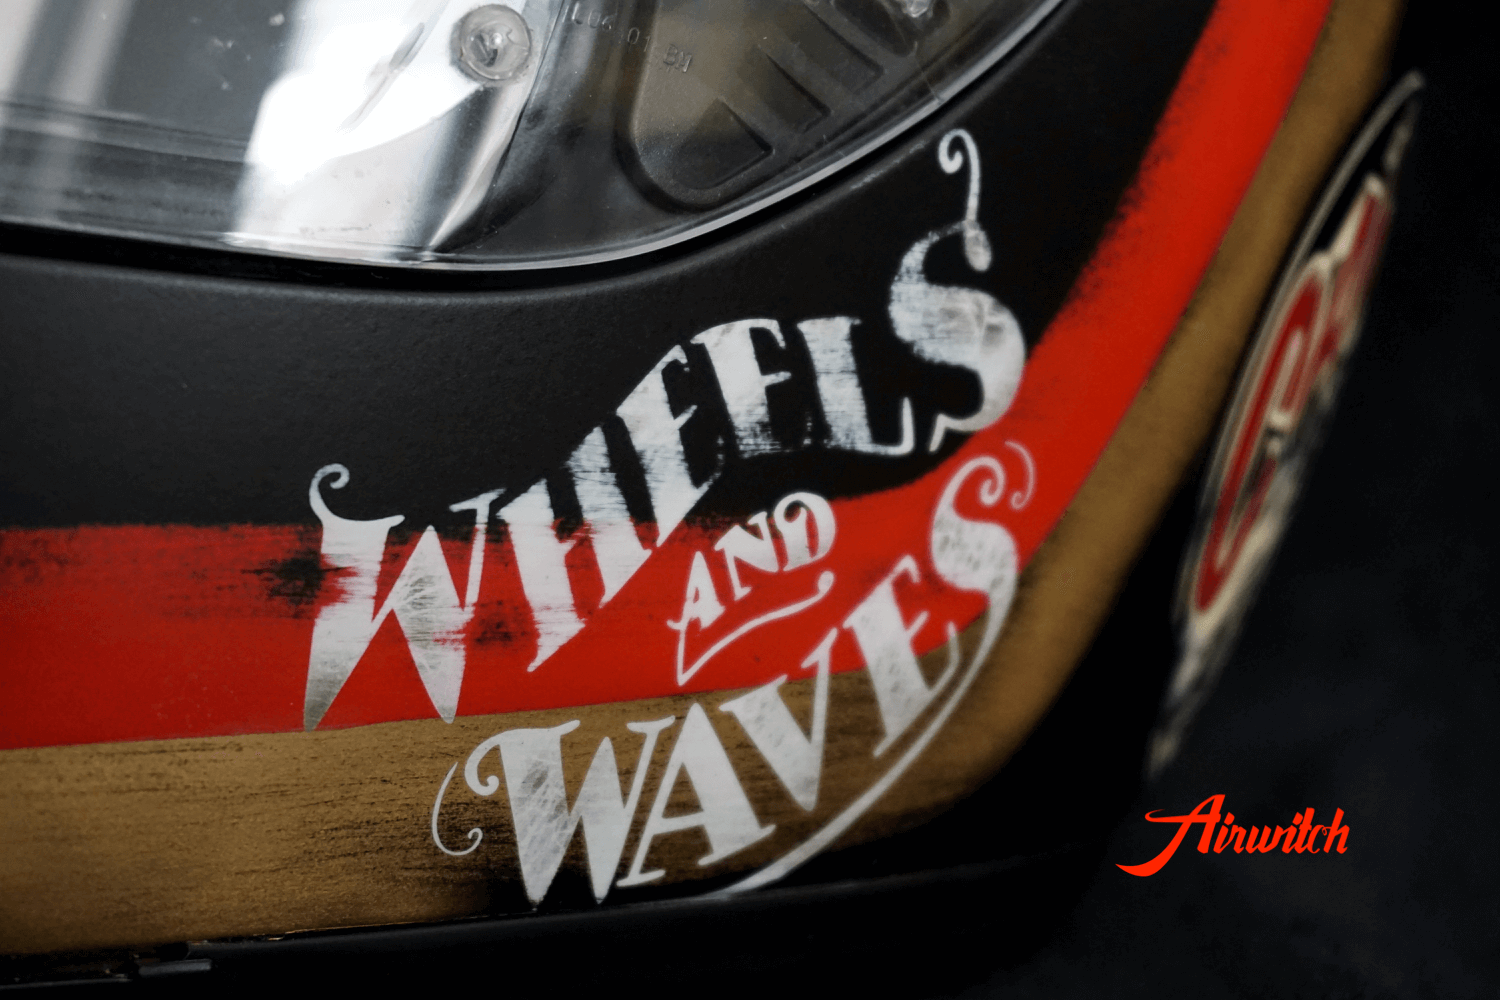 Wheels and Waves Logo im Used Look für BMW Cafe Racer Helm